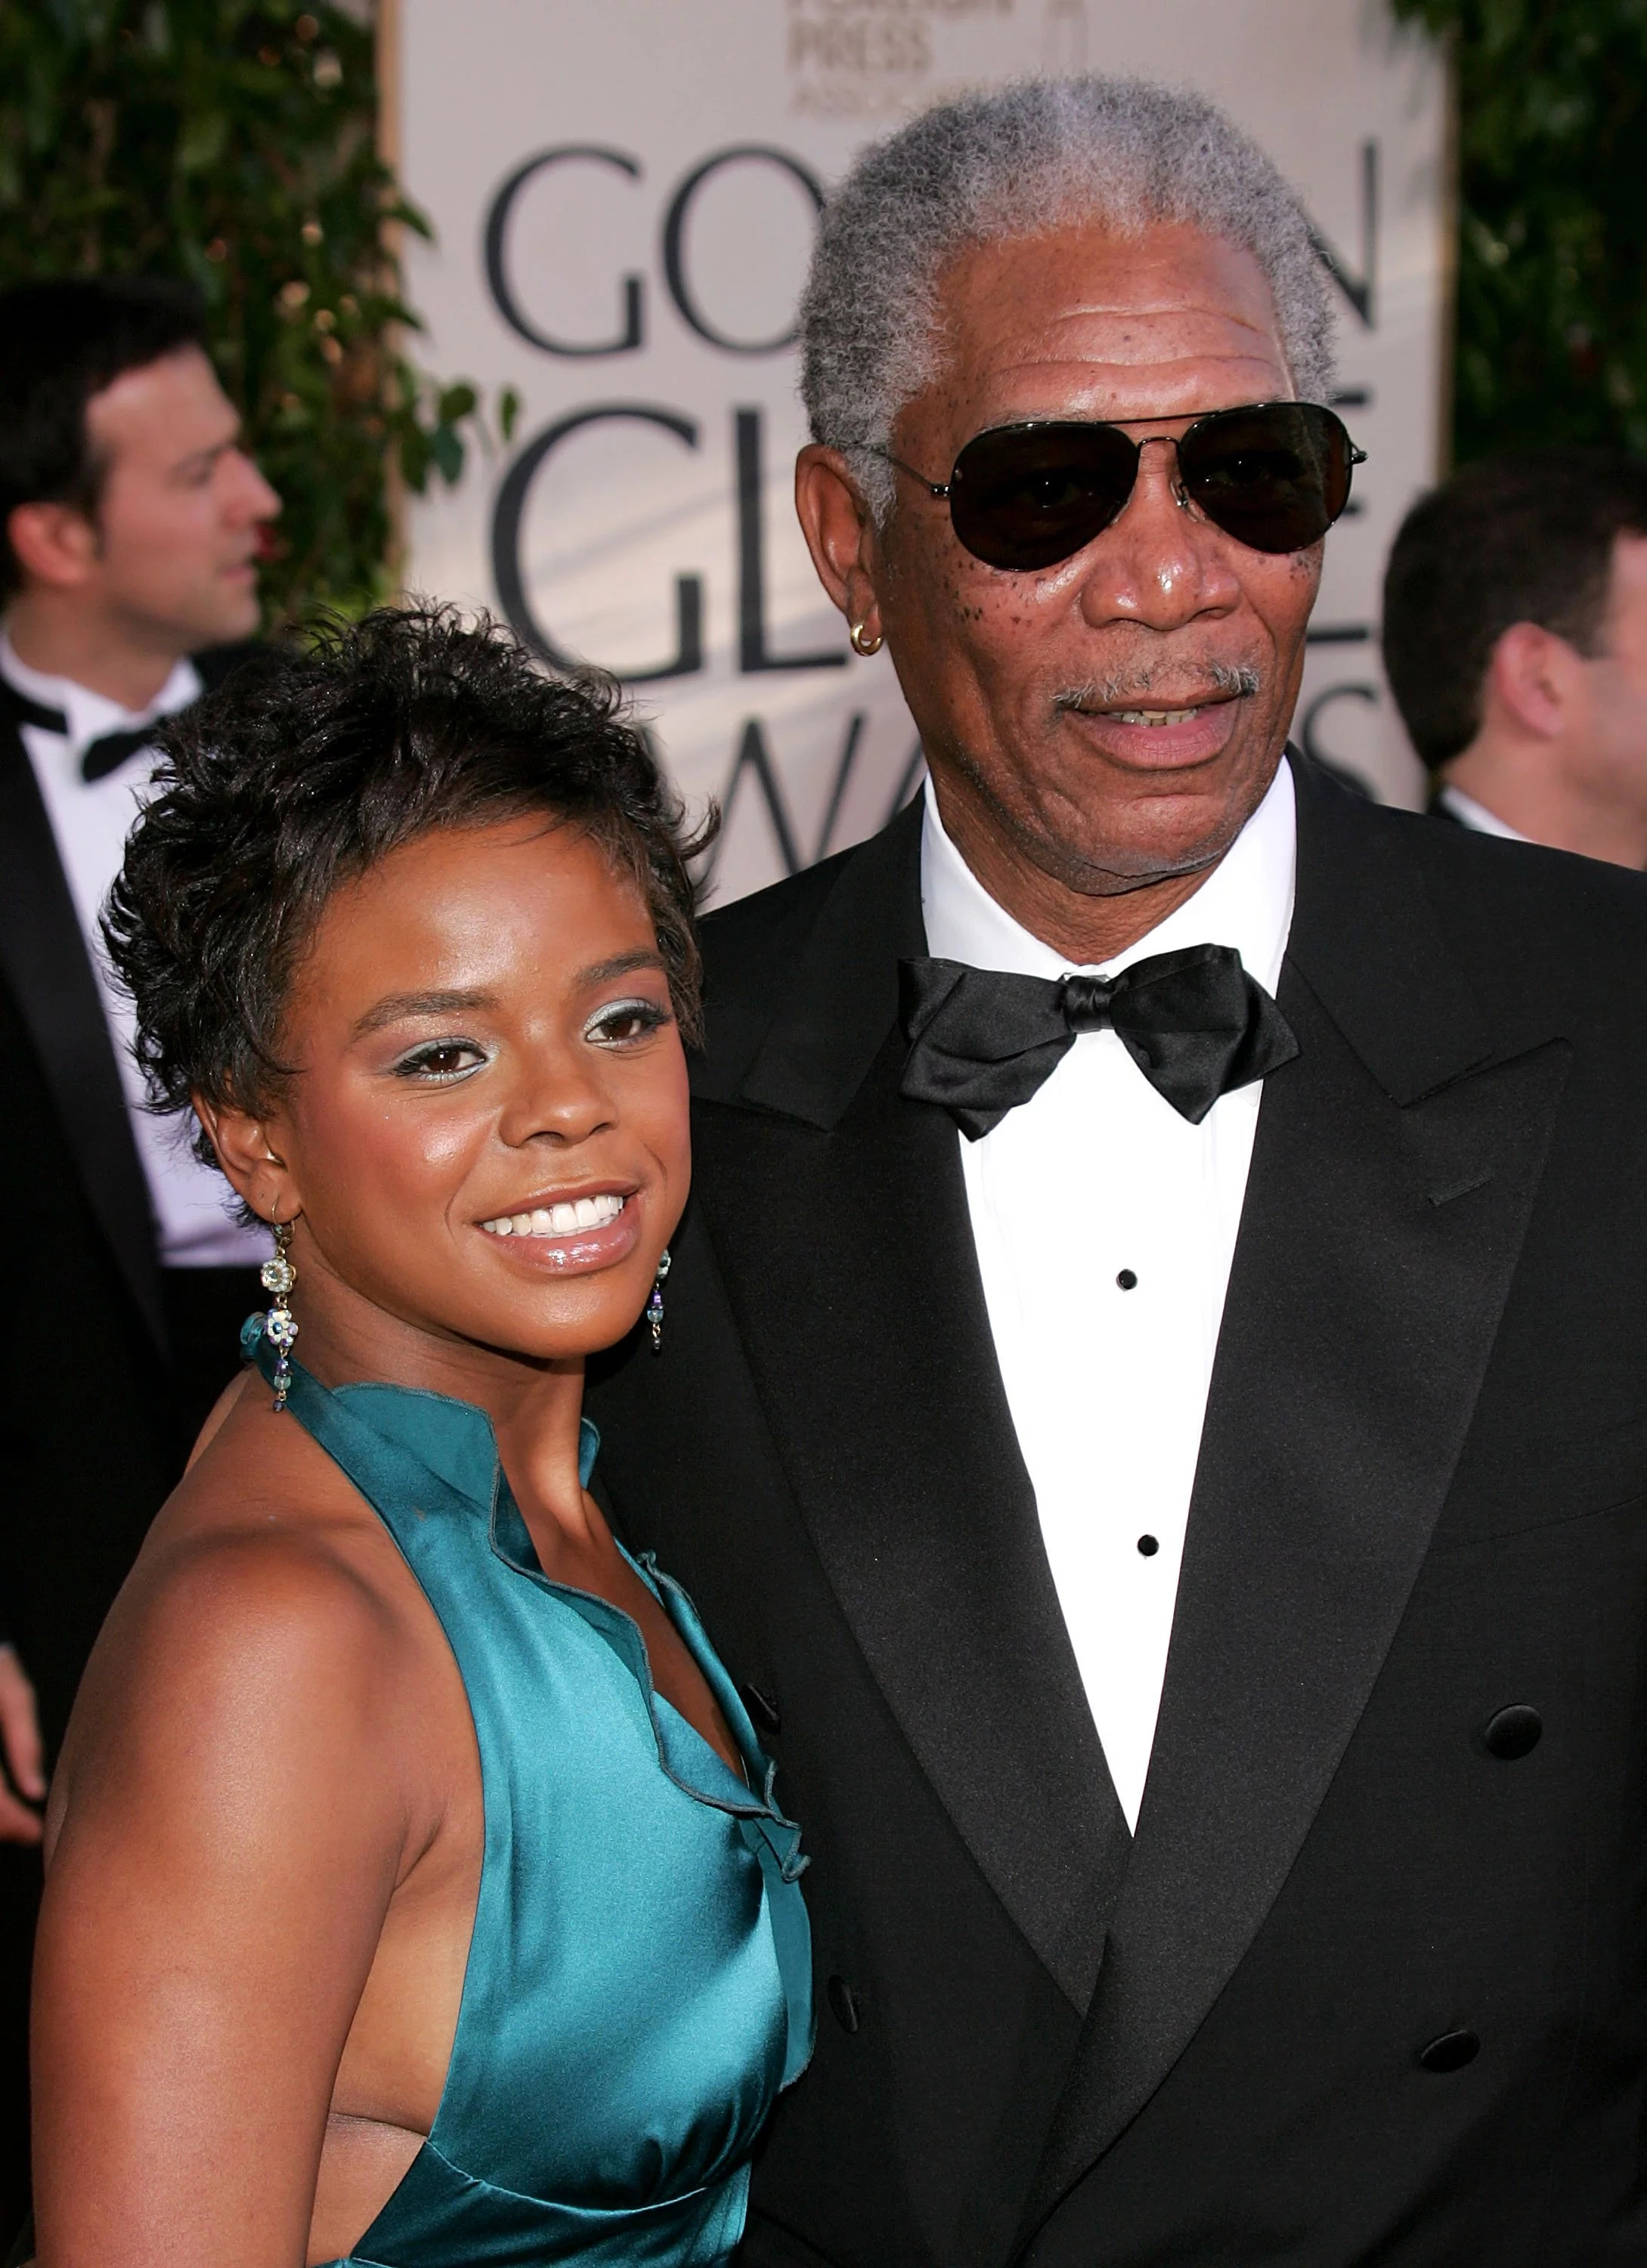 Morgan Freeman allegedly had a secret affair with his grandchild before her brutal death